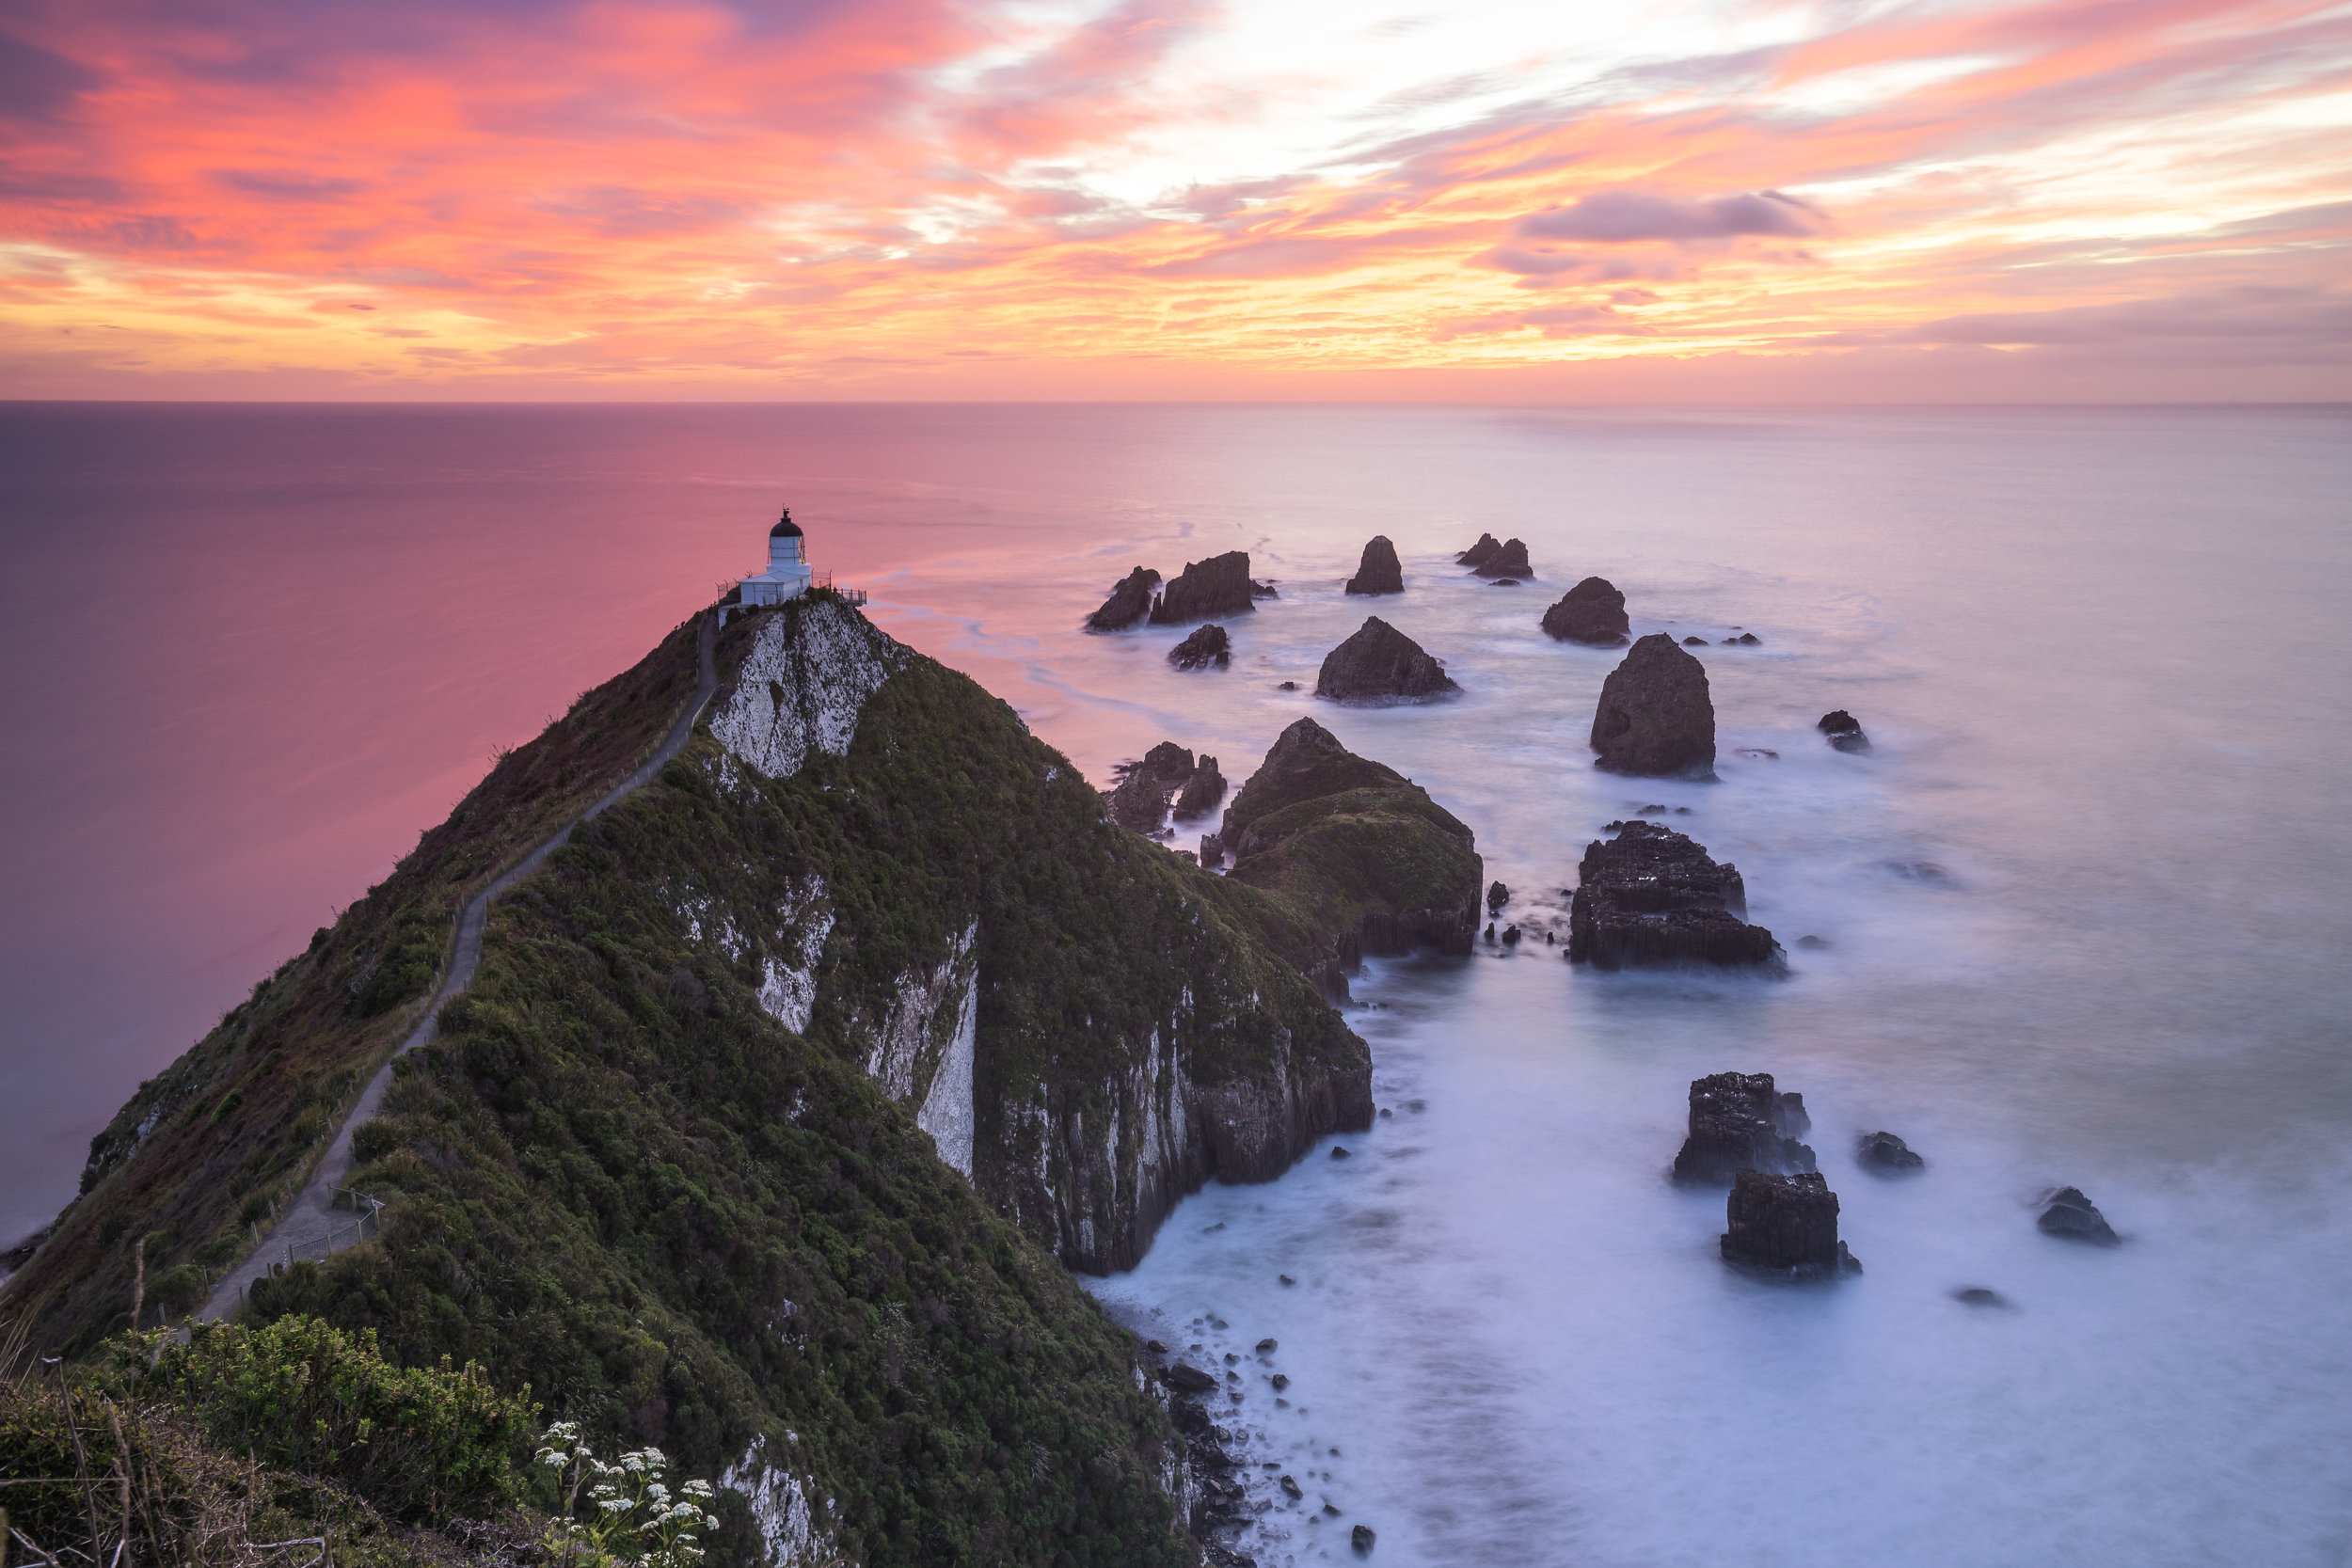 The Nugget Point sunrise was epic